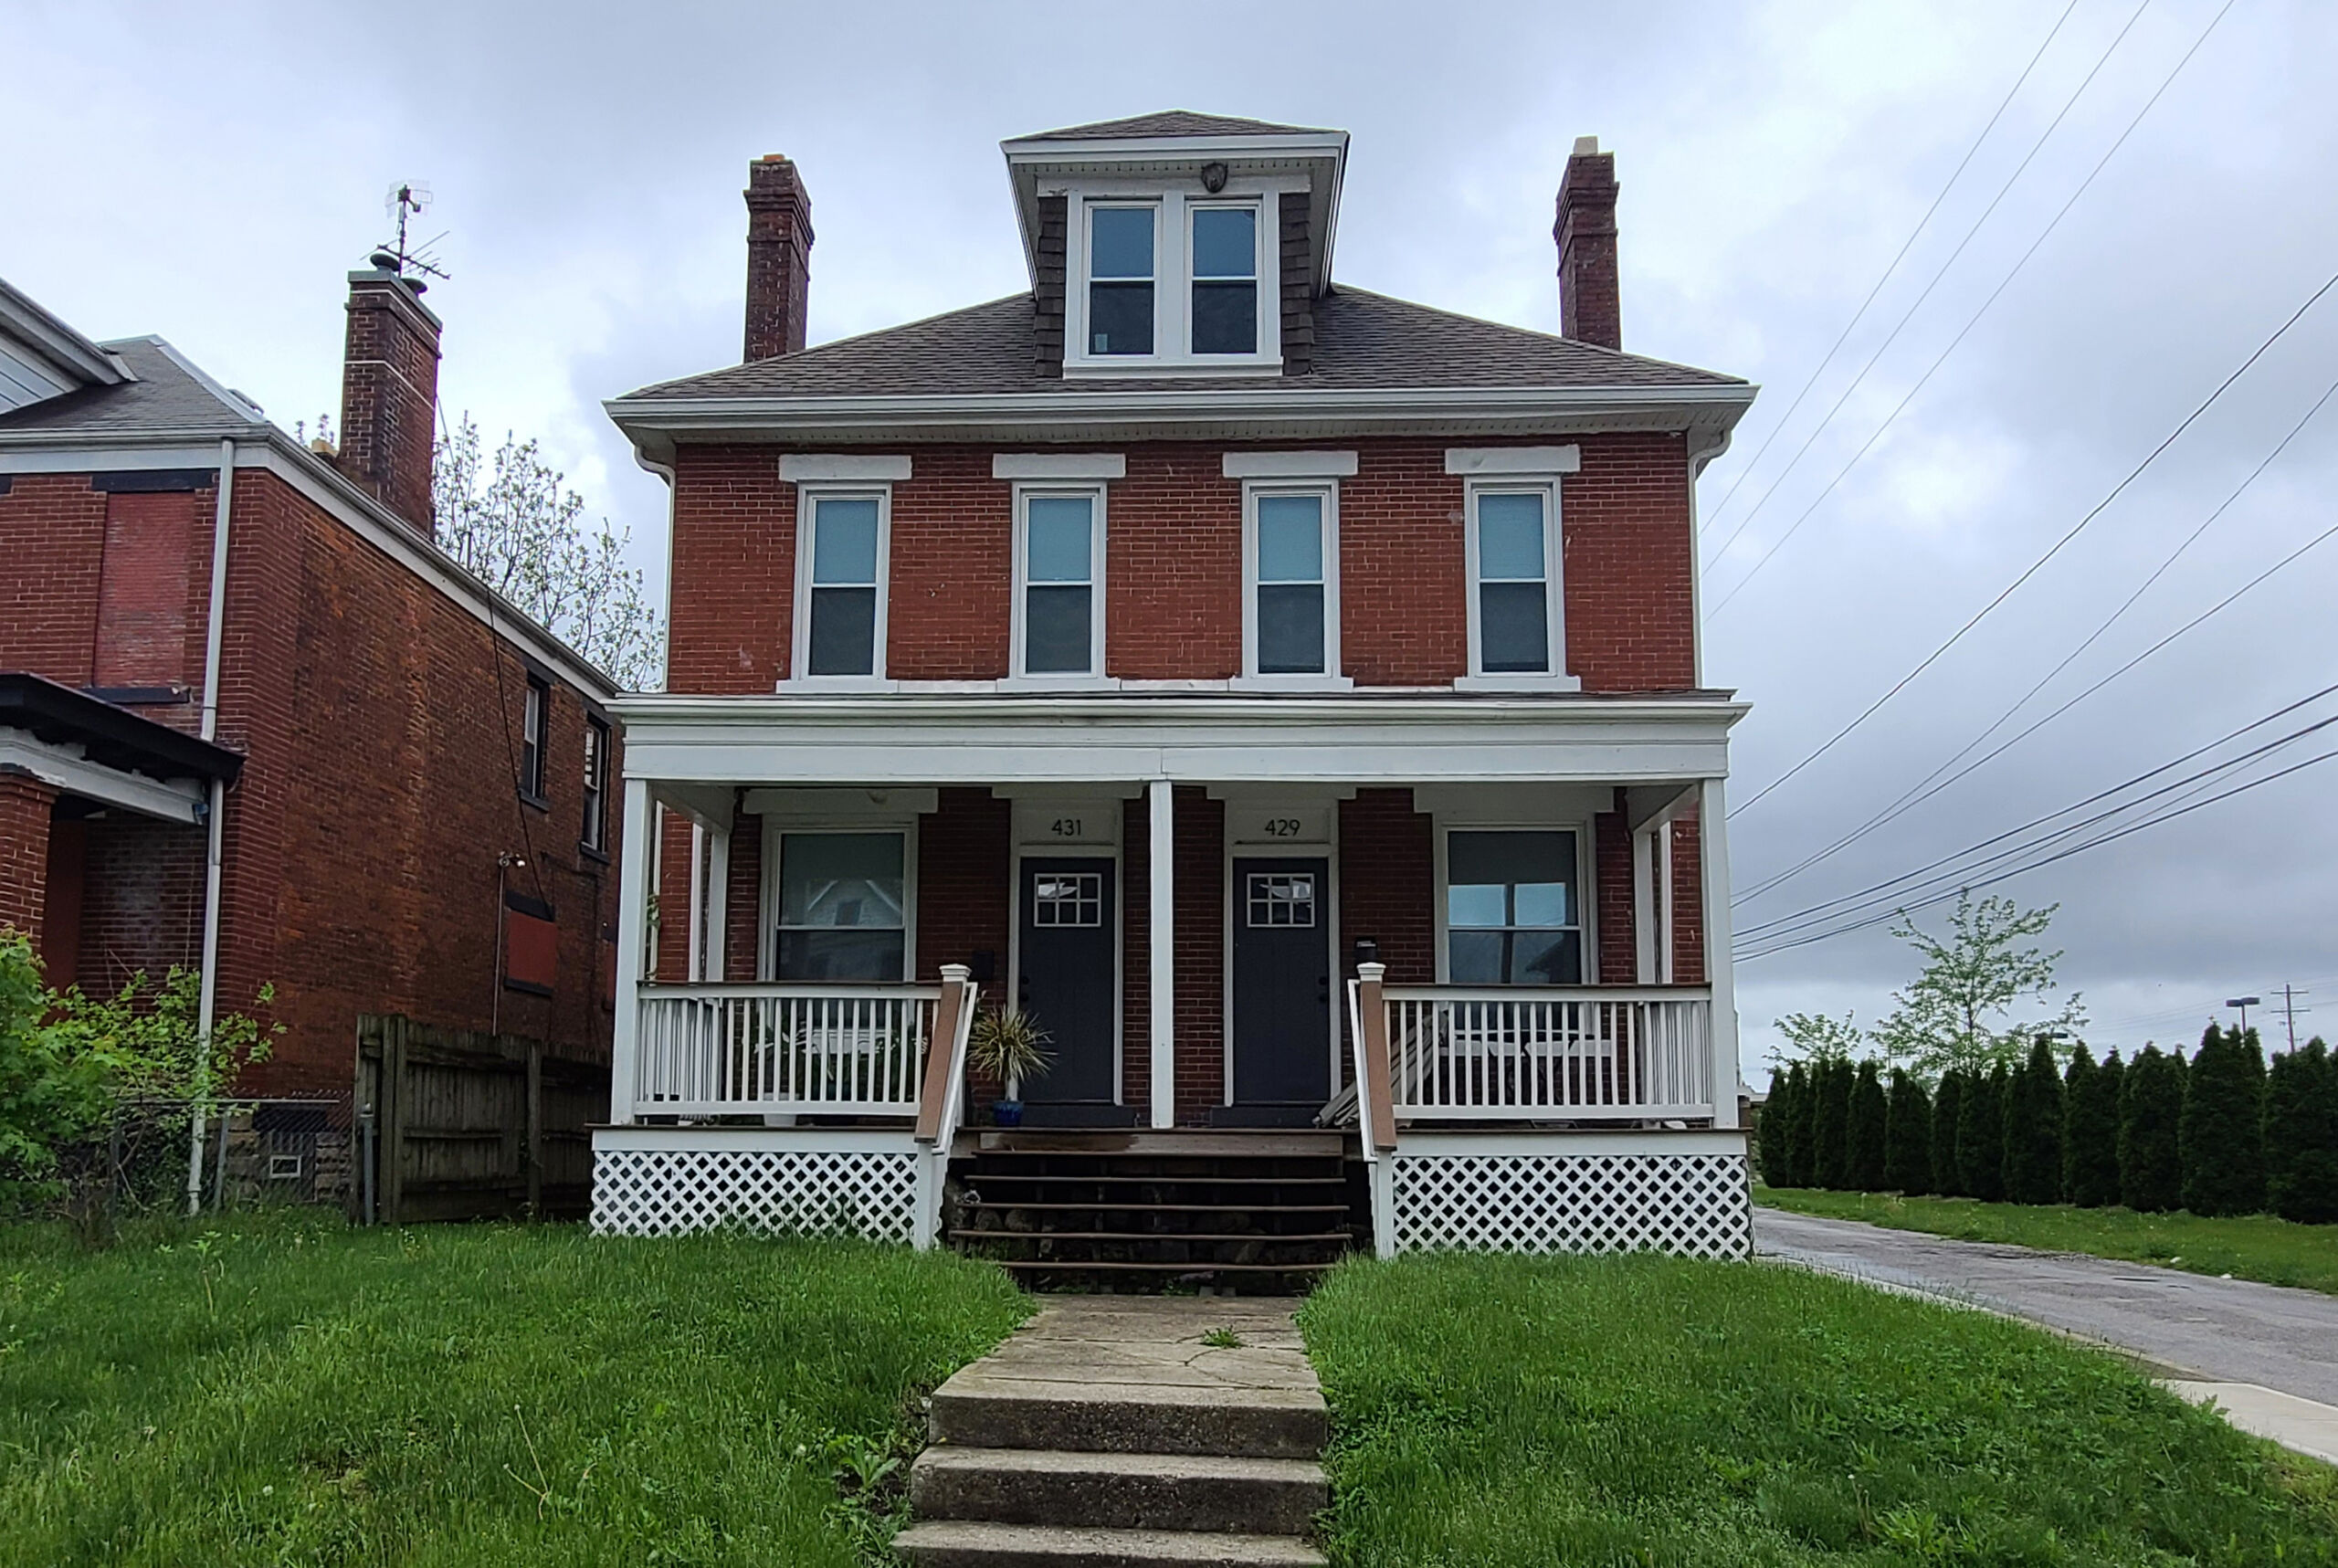 429 Wilson Ave. Multi-Family Rental